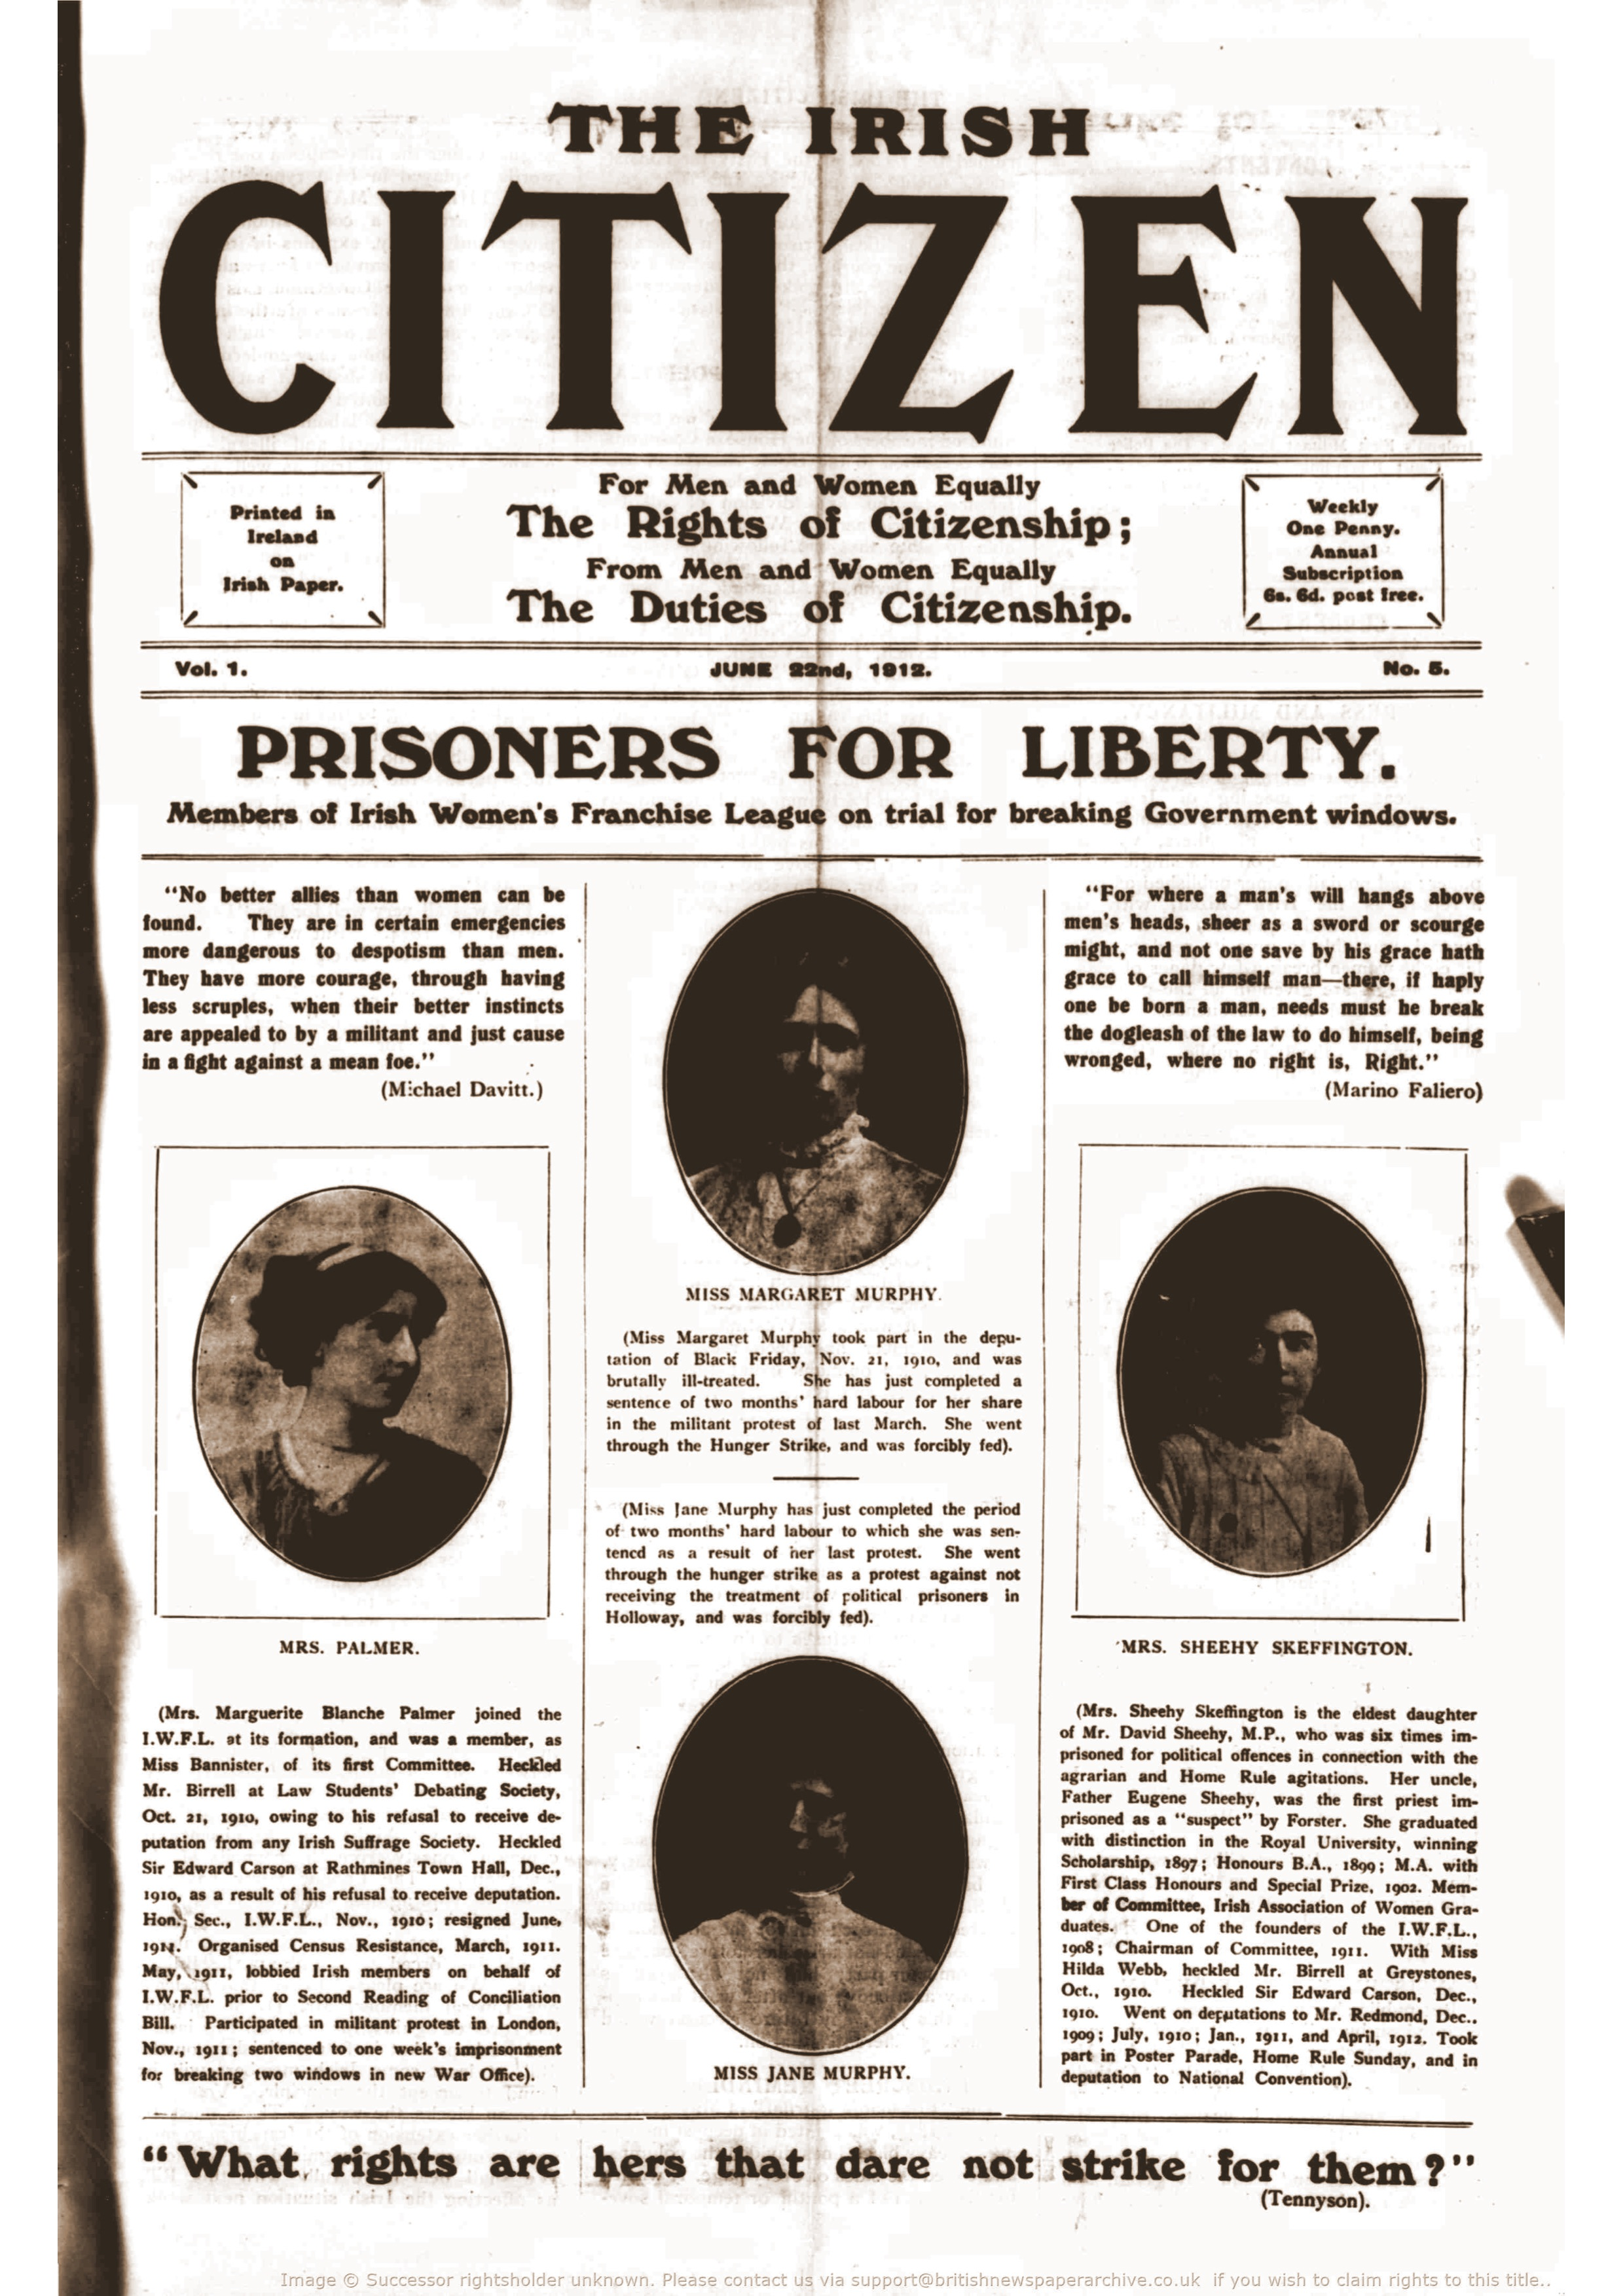 Front page of The Irish Citizen, 22 June 1912. British Newspaper Archive.